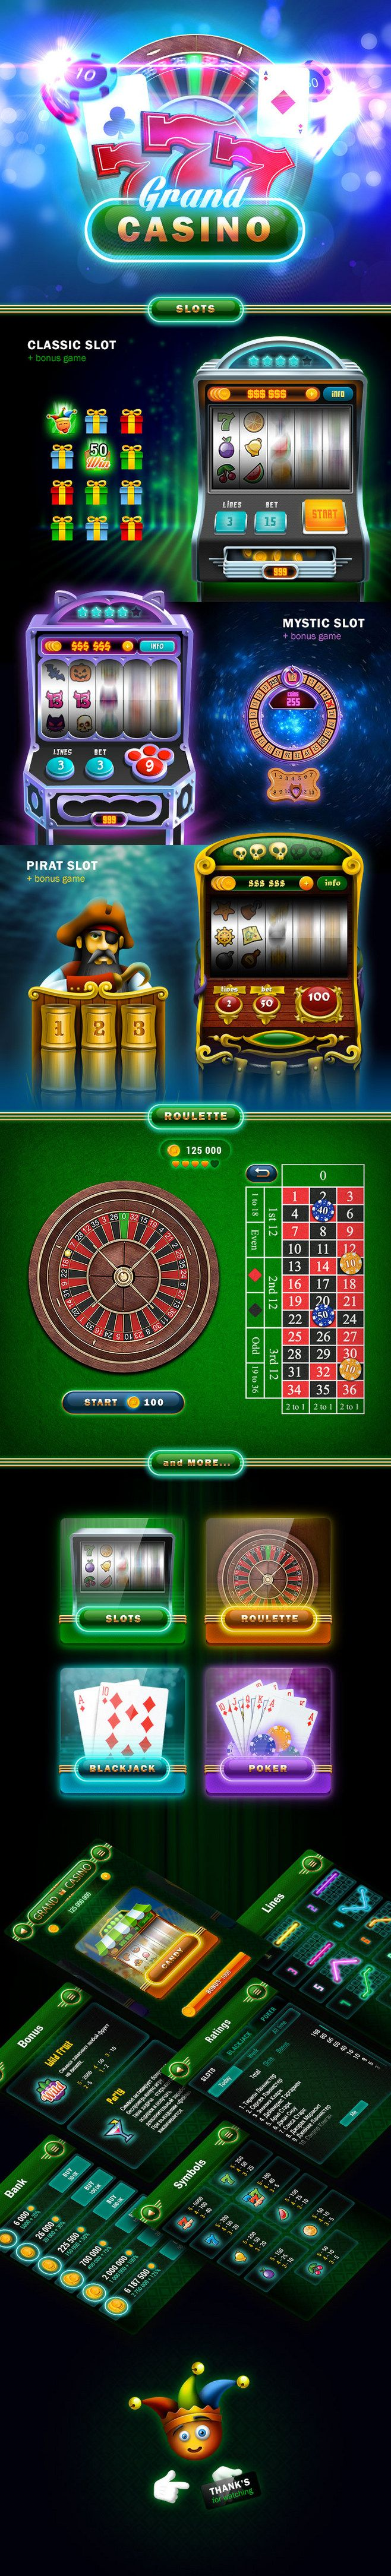 Roulette Moons En Ligne France